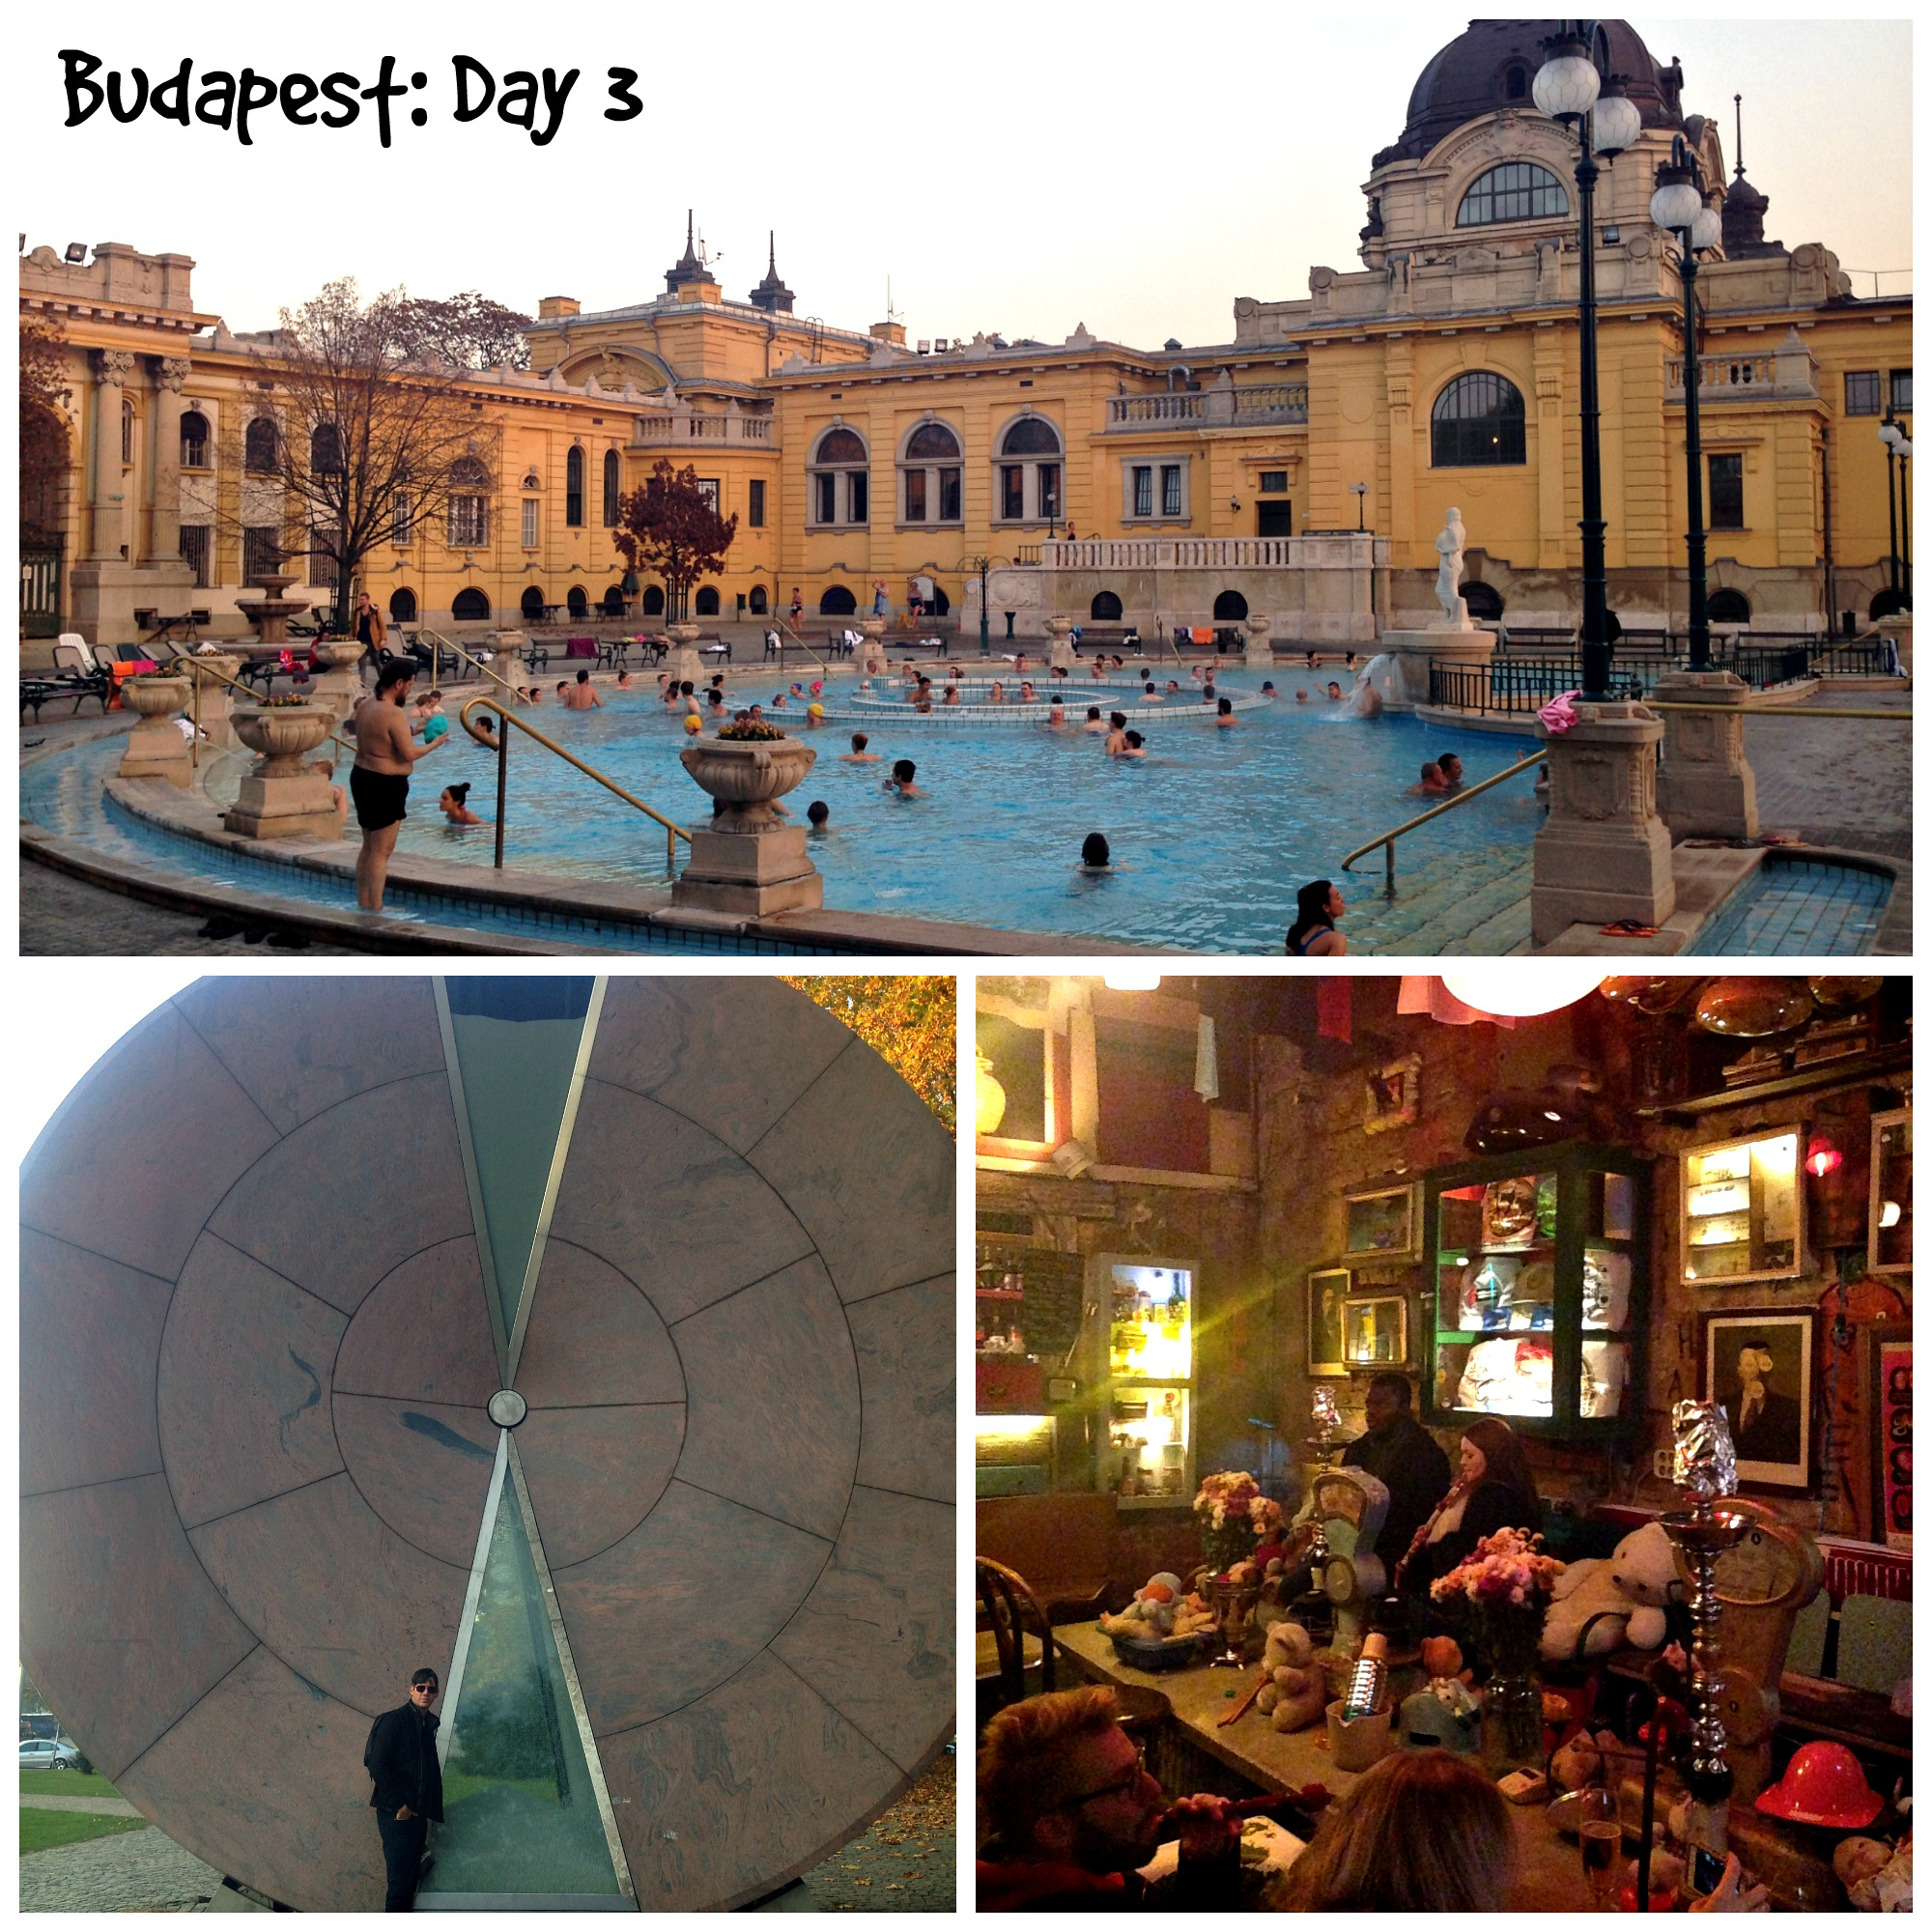 Szechenyi Thermal Baths, City Park, Szimpla Kert Ruin Pub